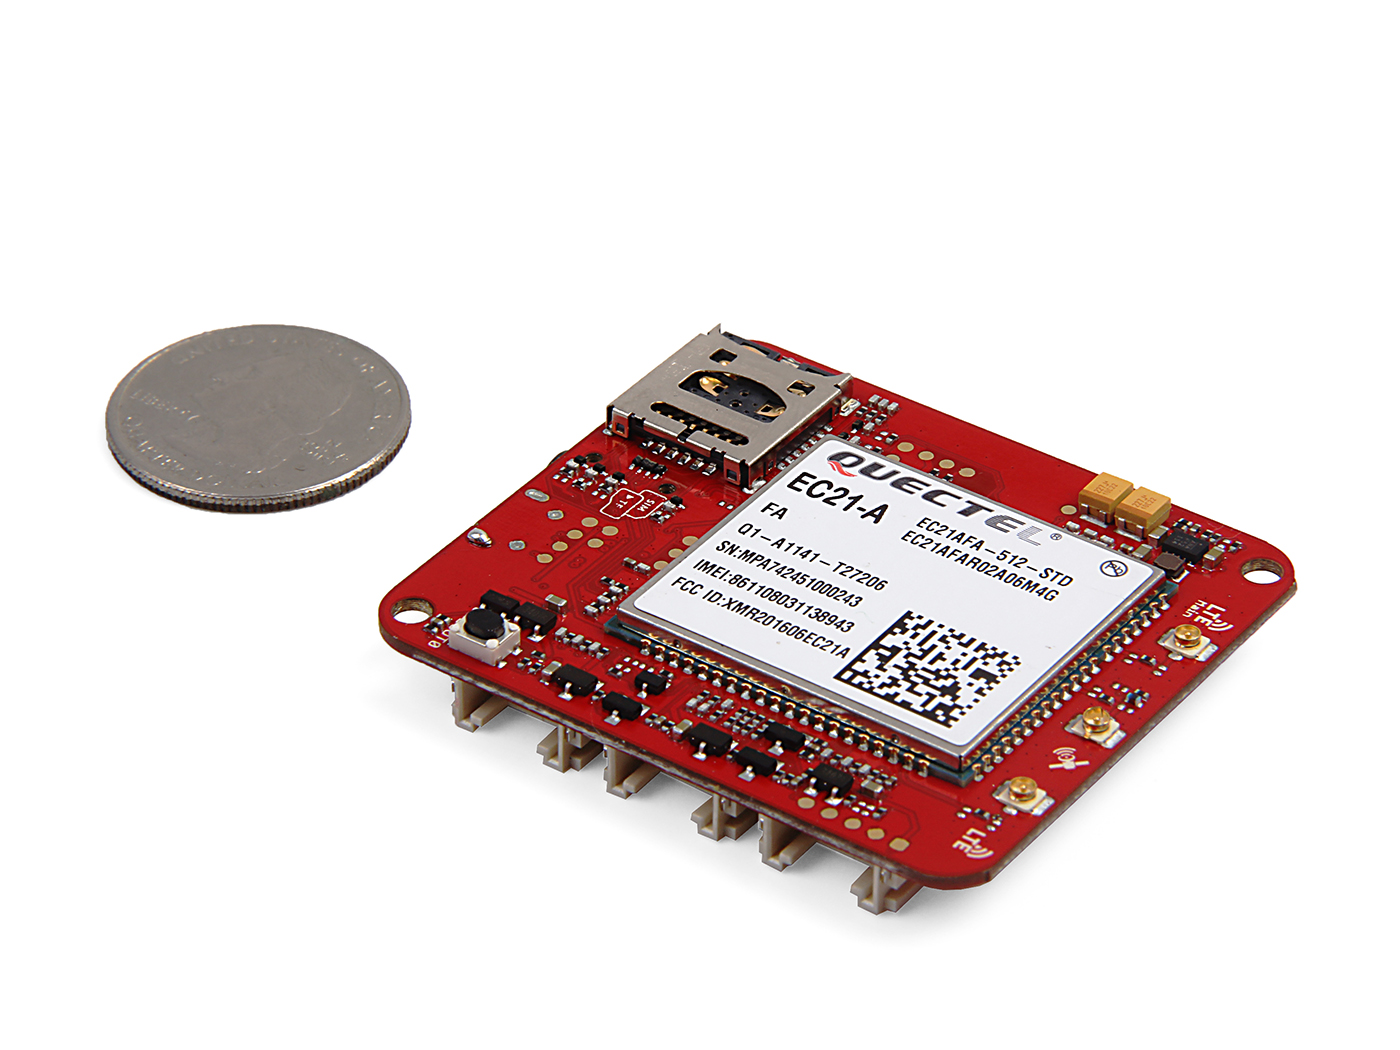 Wio LTE US Version - 4G, Cat.1, GNSS, JavaScript(Espruino) Compatible